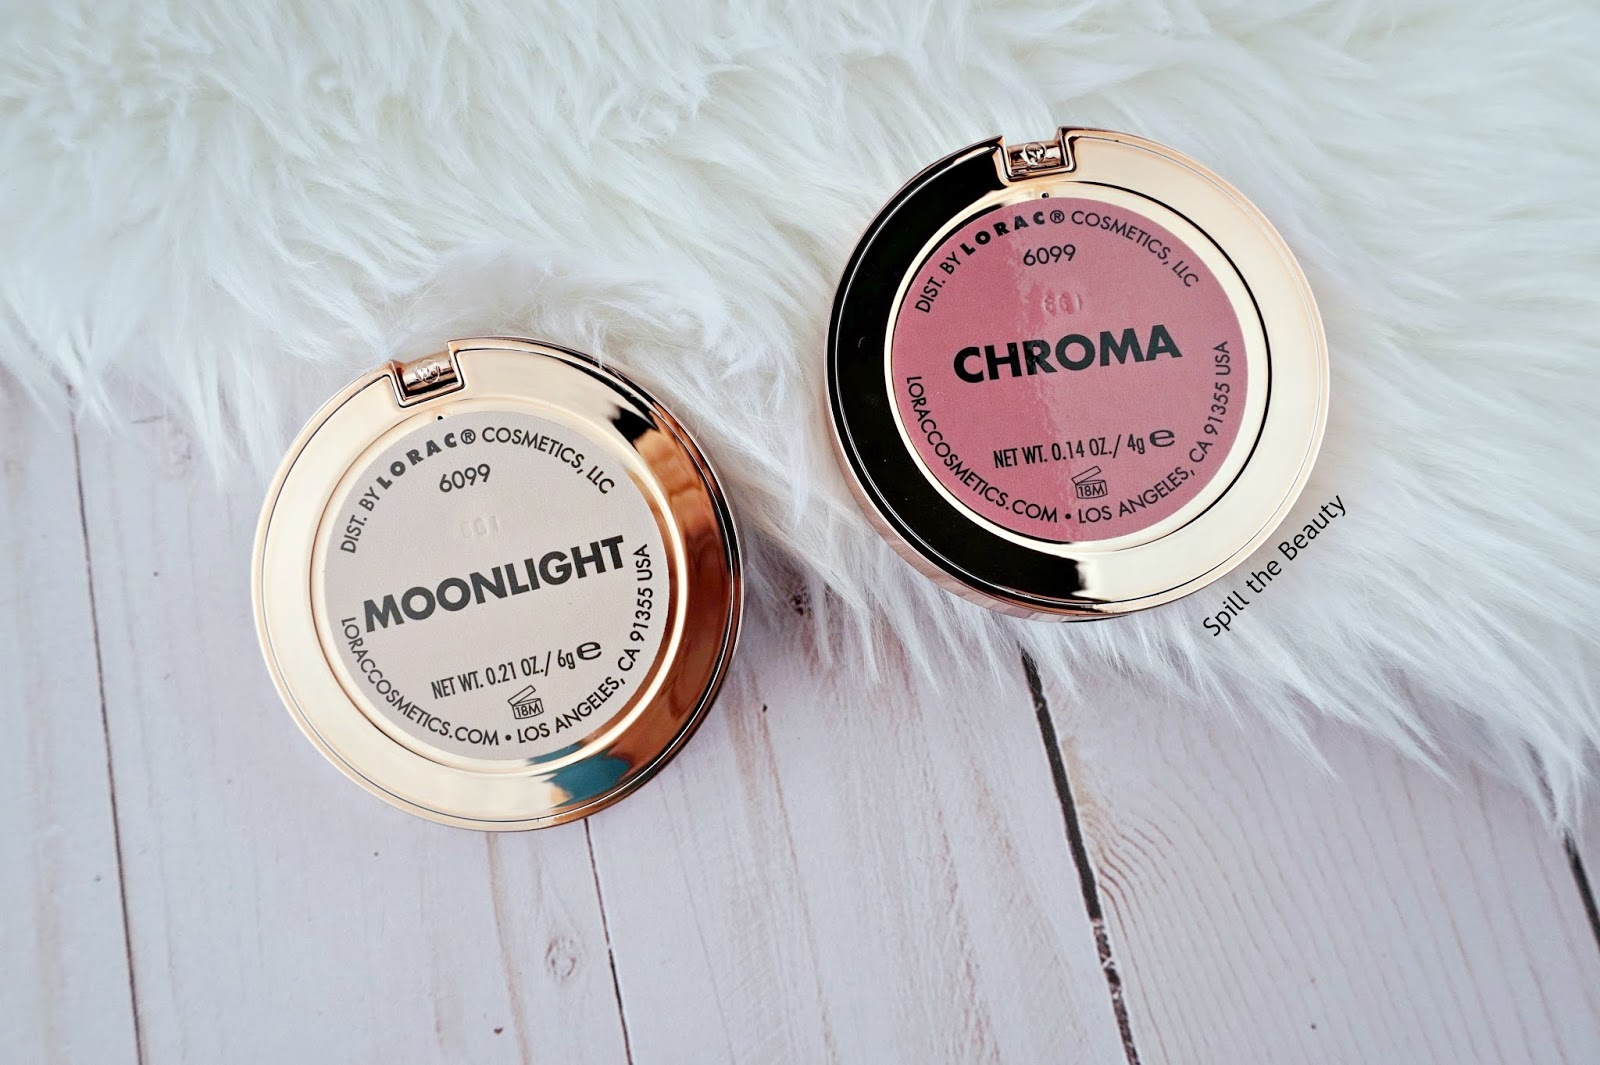 lorac evening soiree light source and color source duo moonlight highlighter chroma blush review swatches